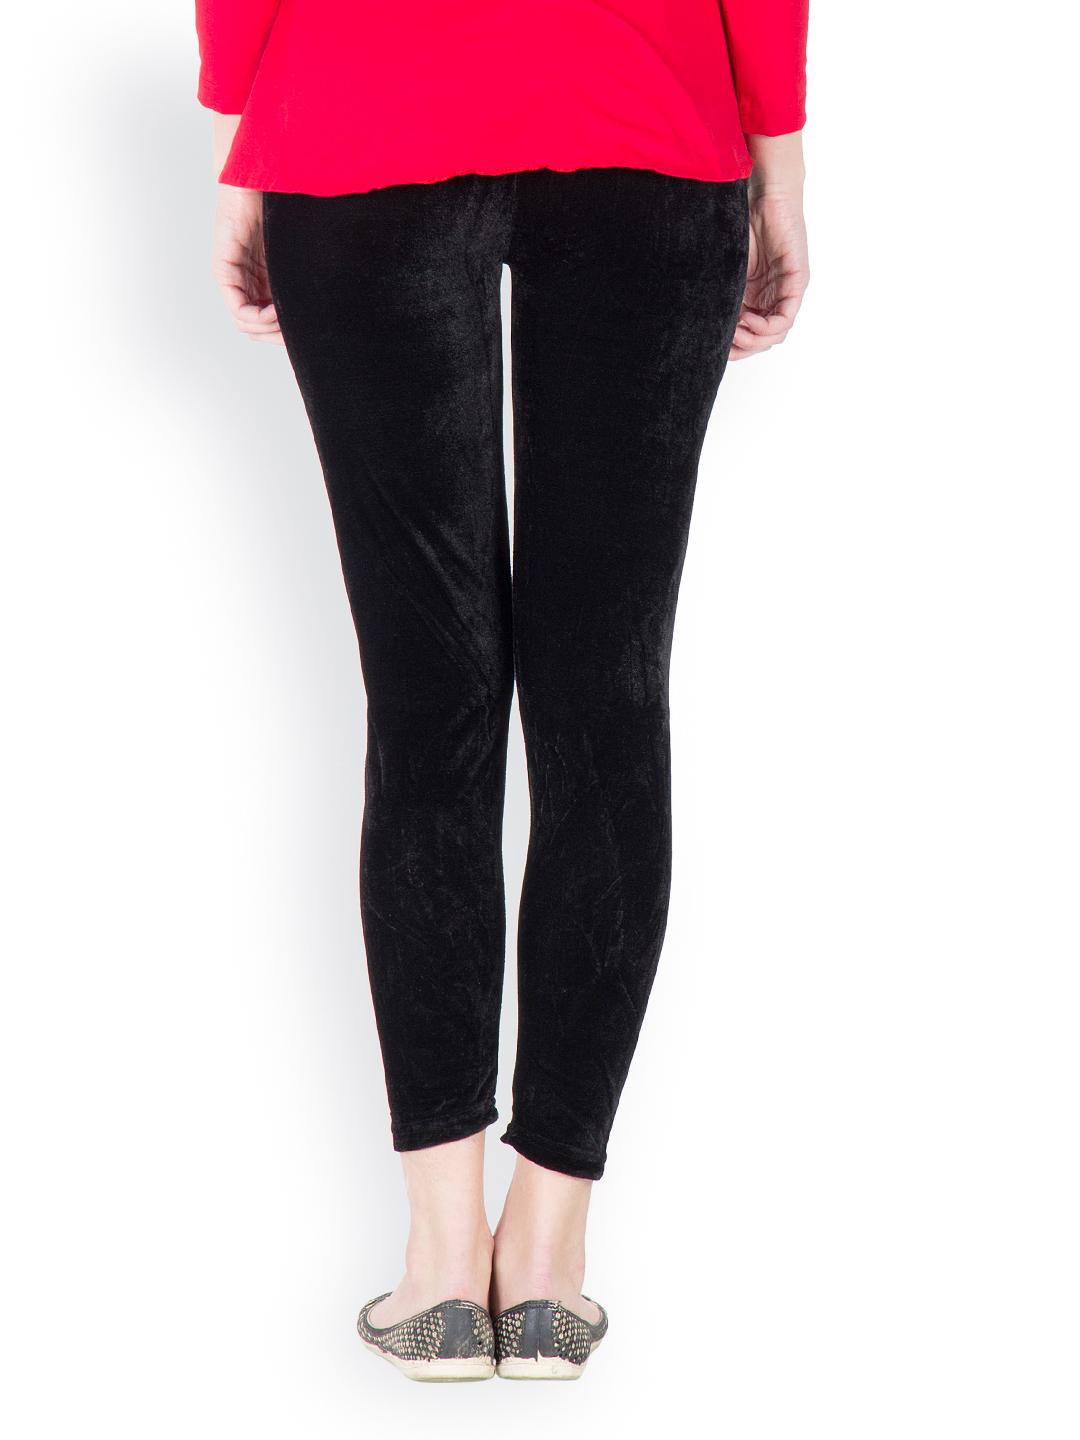 Myntra Camey Women Black Velvet Leggings 610813 | Buy Myntra Camey Leggings at best price online ...